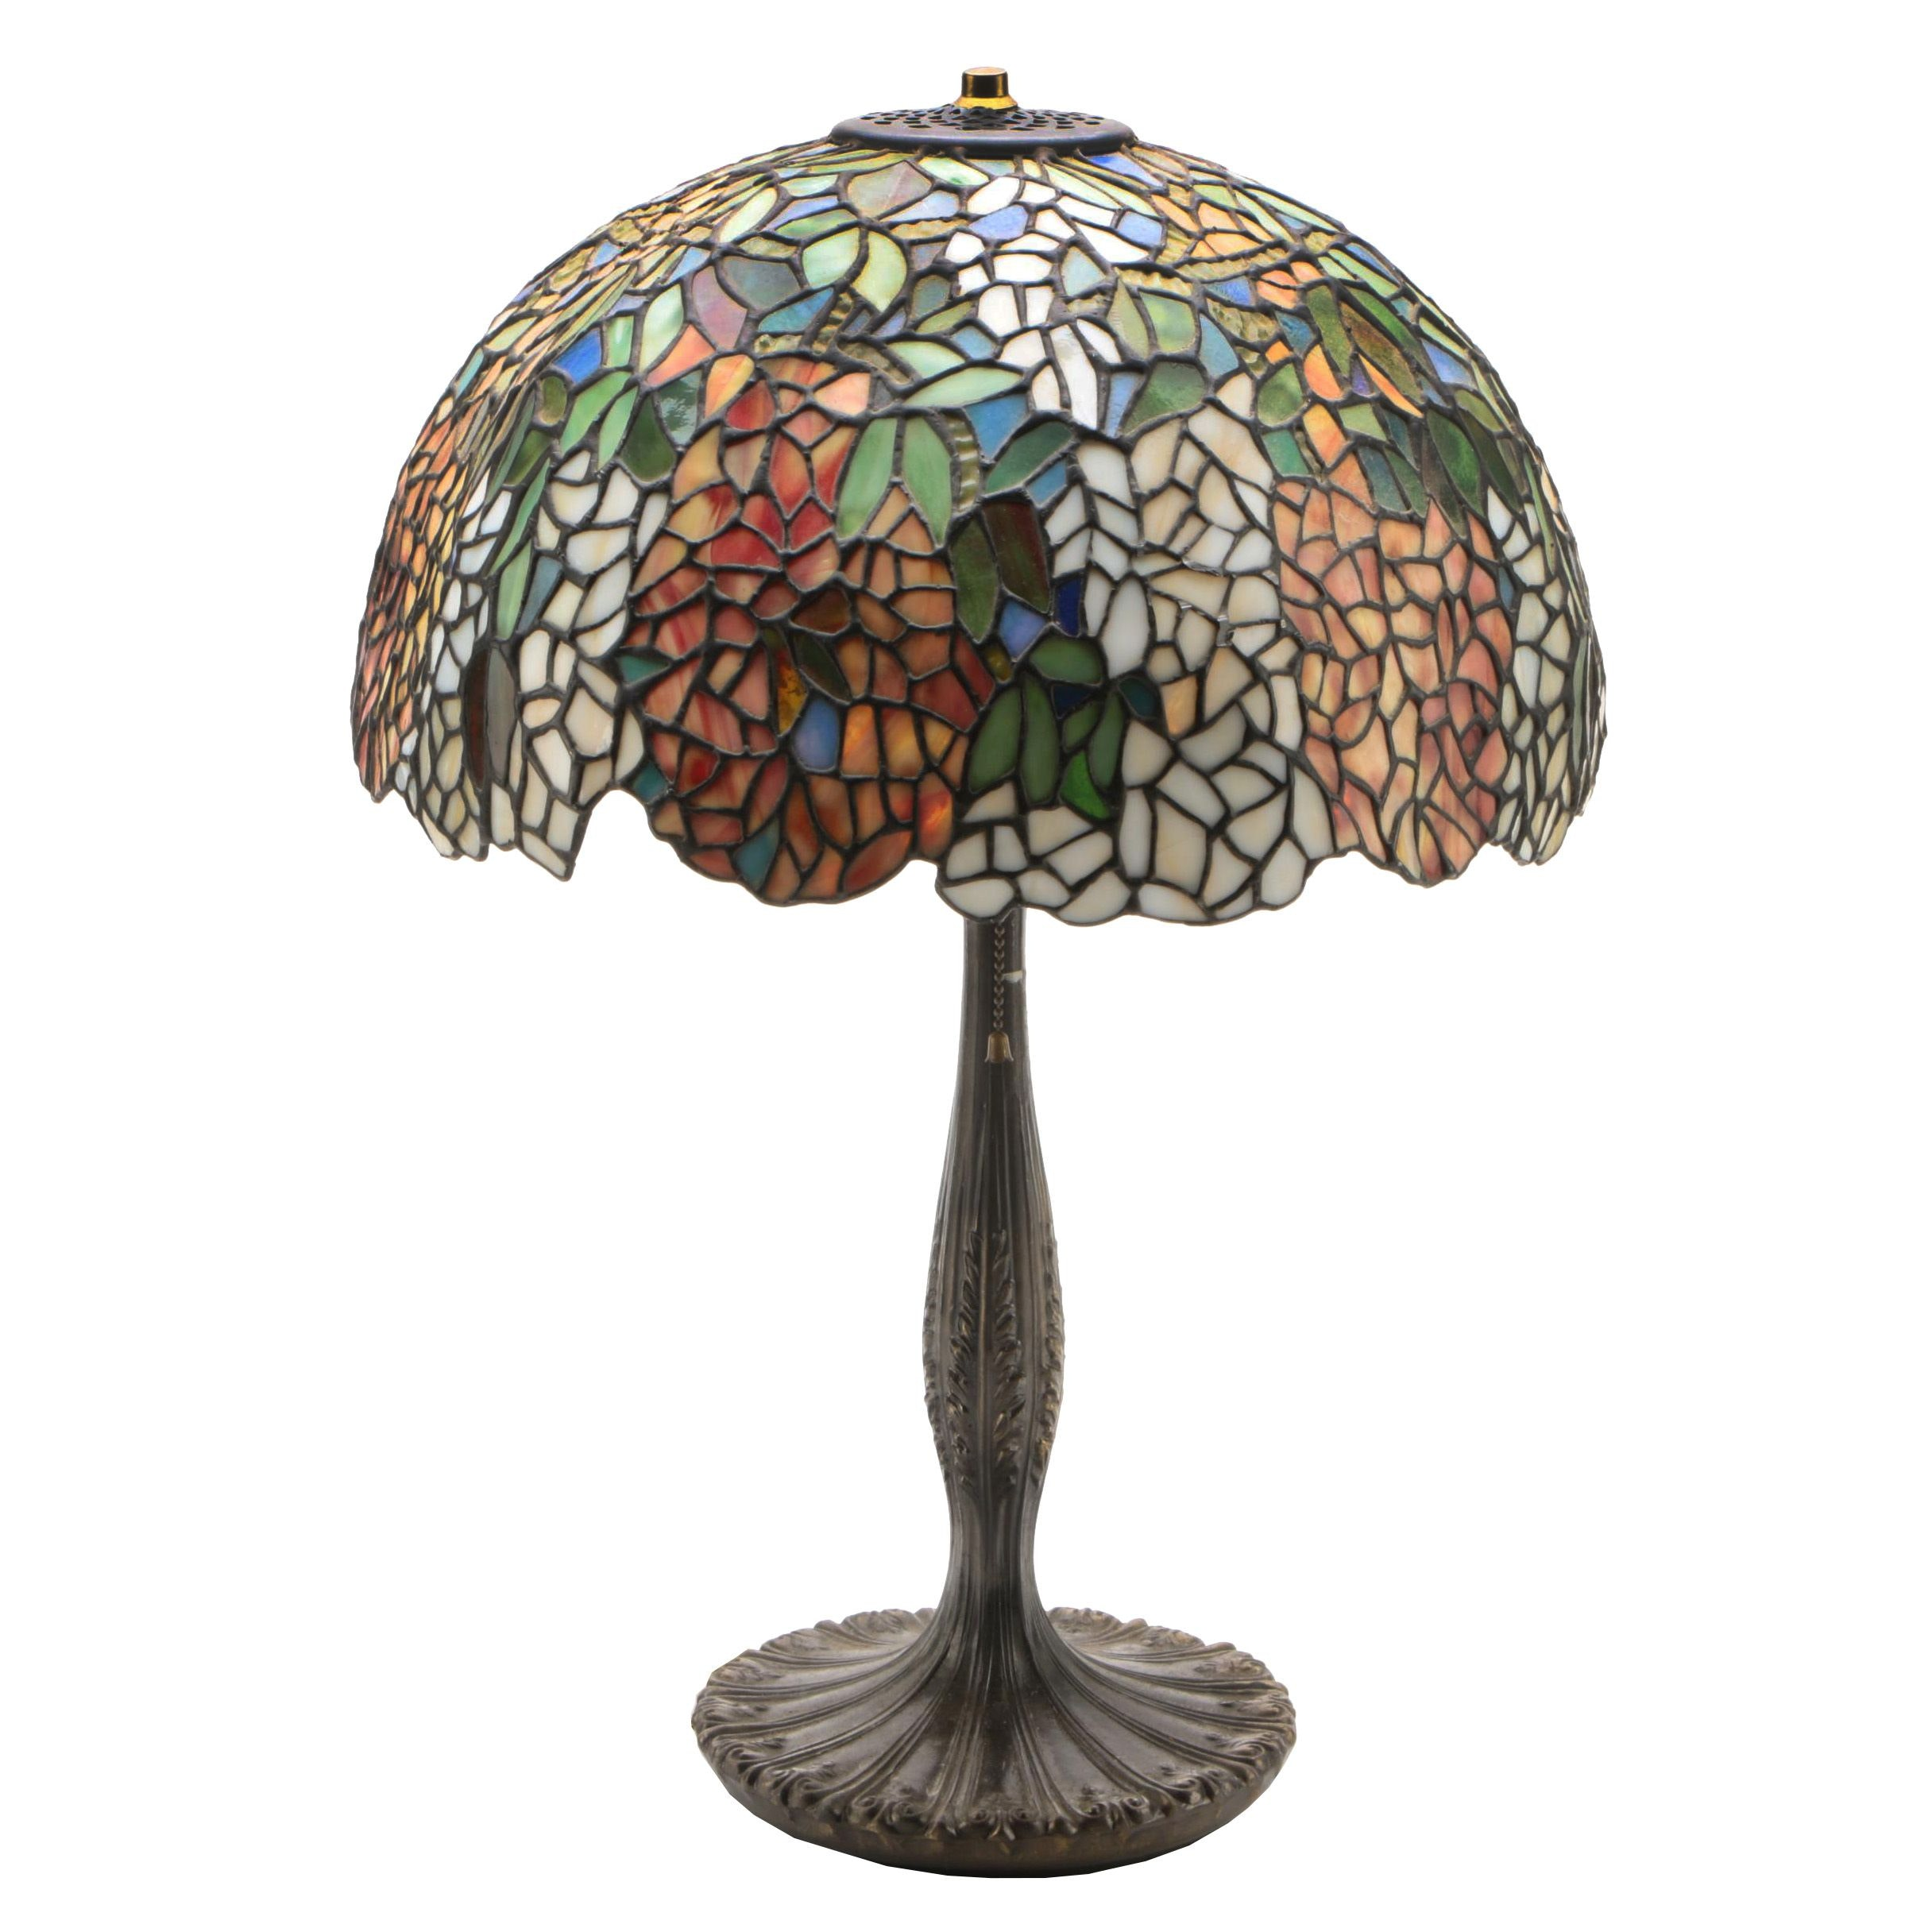 Dale Tiffany Cast Metal Table Lamp with Slag and Stained Glass Shade